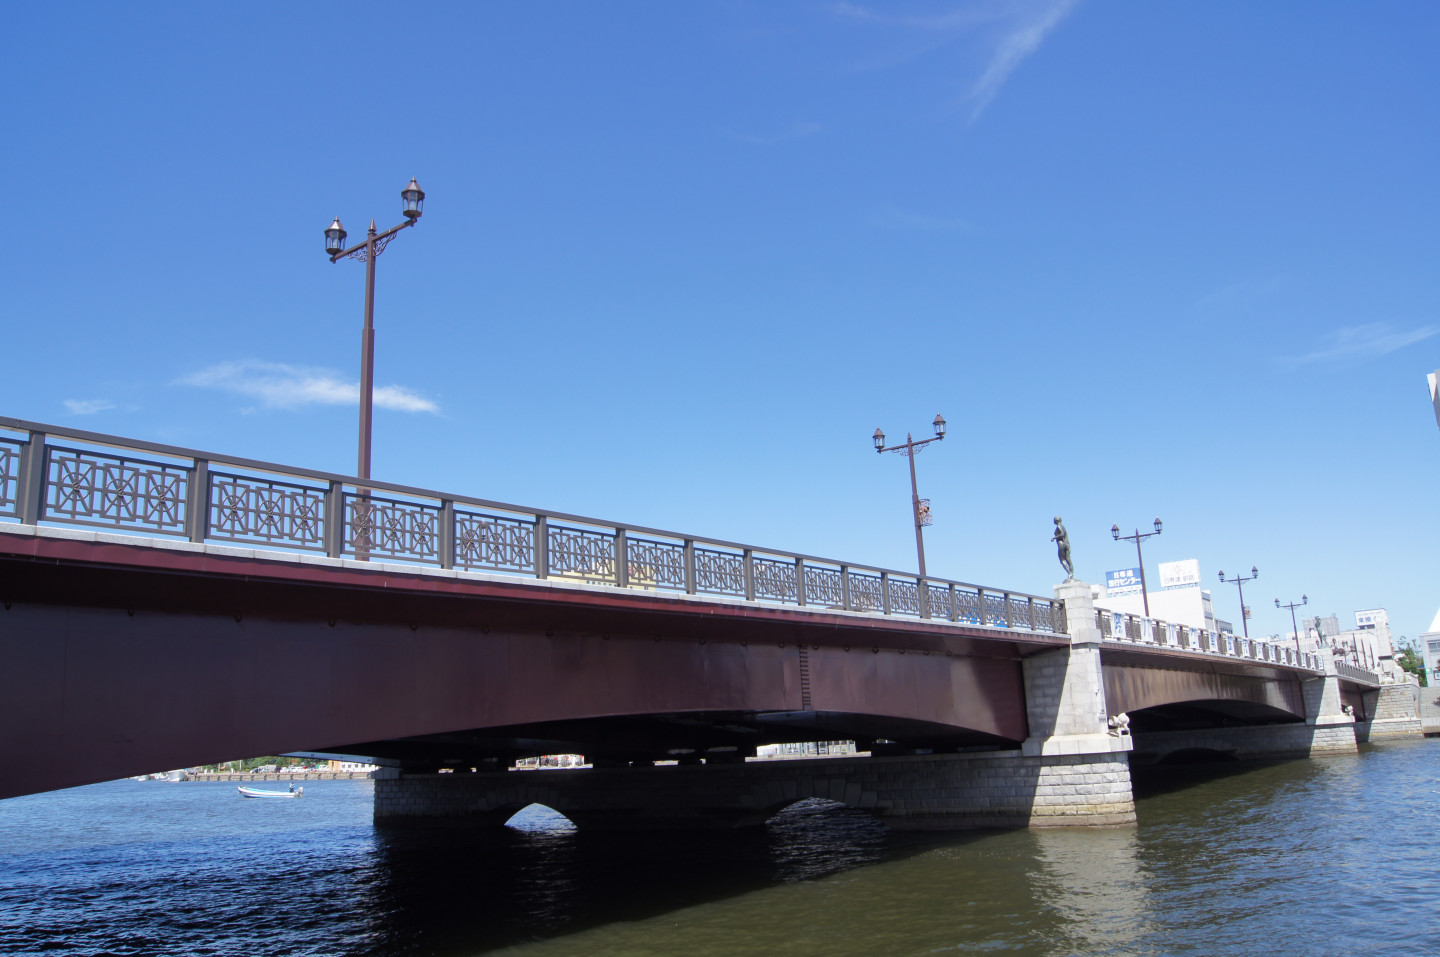 Nusamai Bridge and the Kushiro River banks were the main locations where the movie Banka was filmed